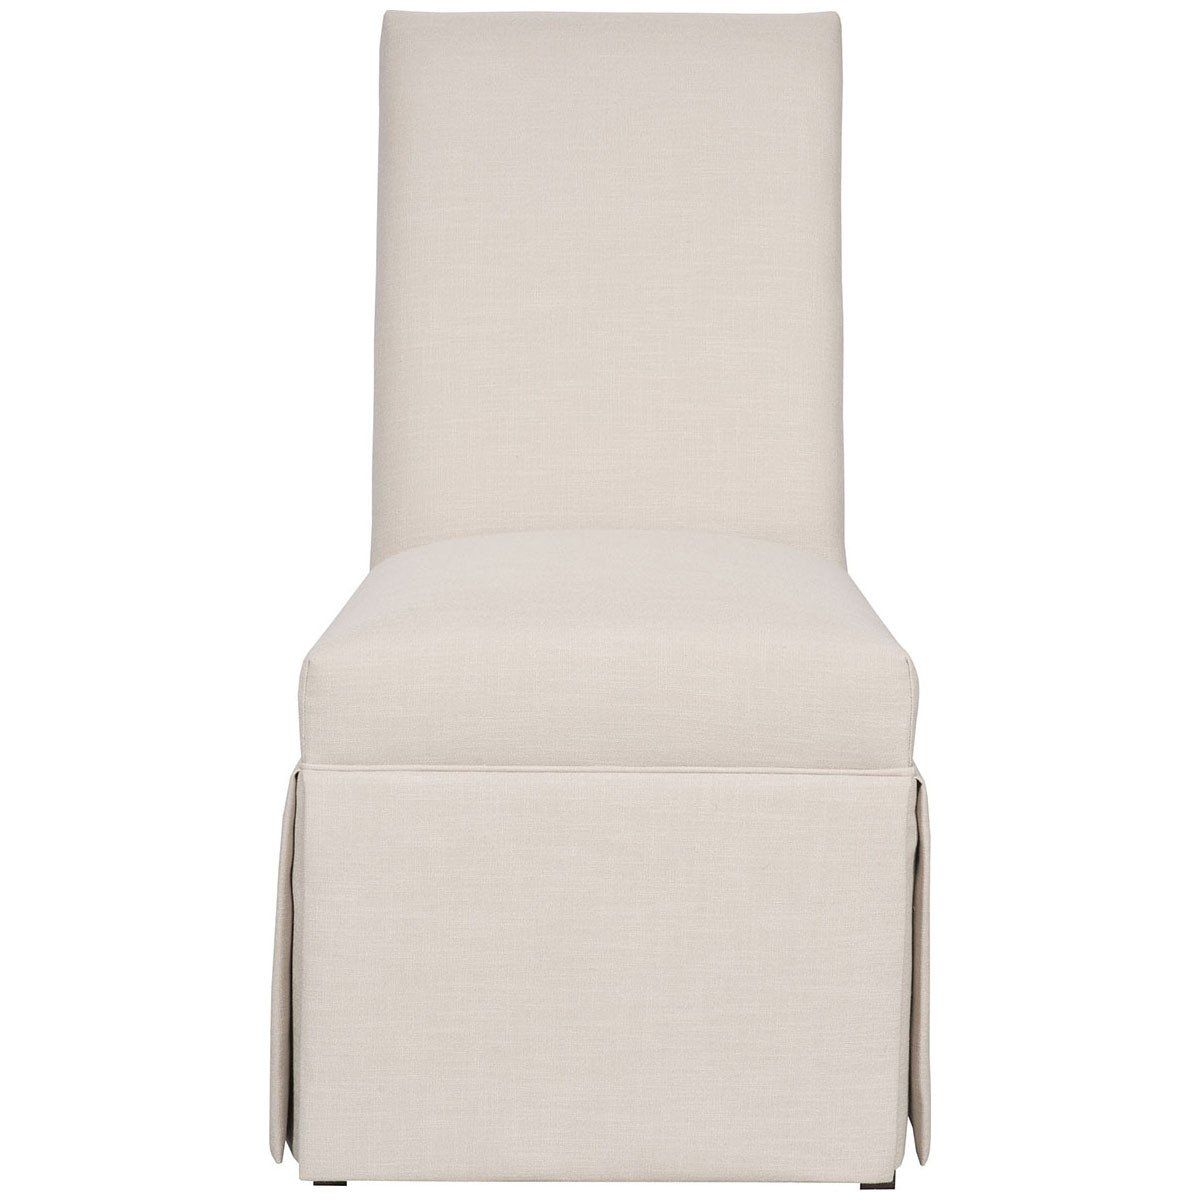 Vanguard Furniture Novella Pumice Butler Skirted Side Chair  # Muebles Mauro Capital